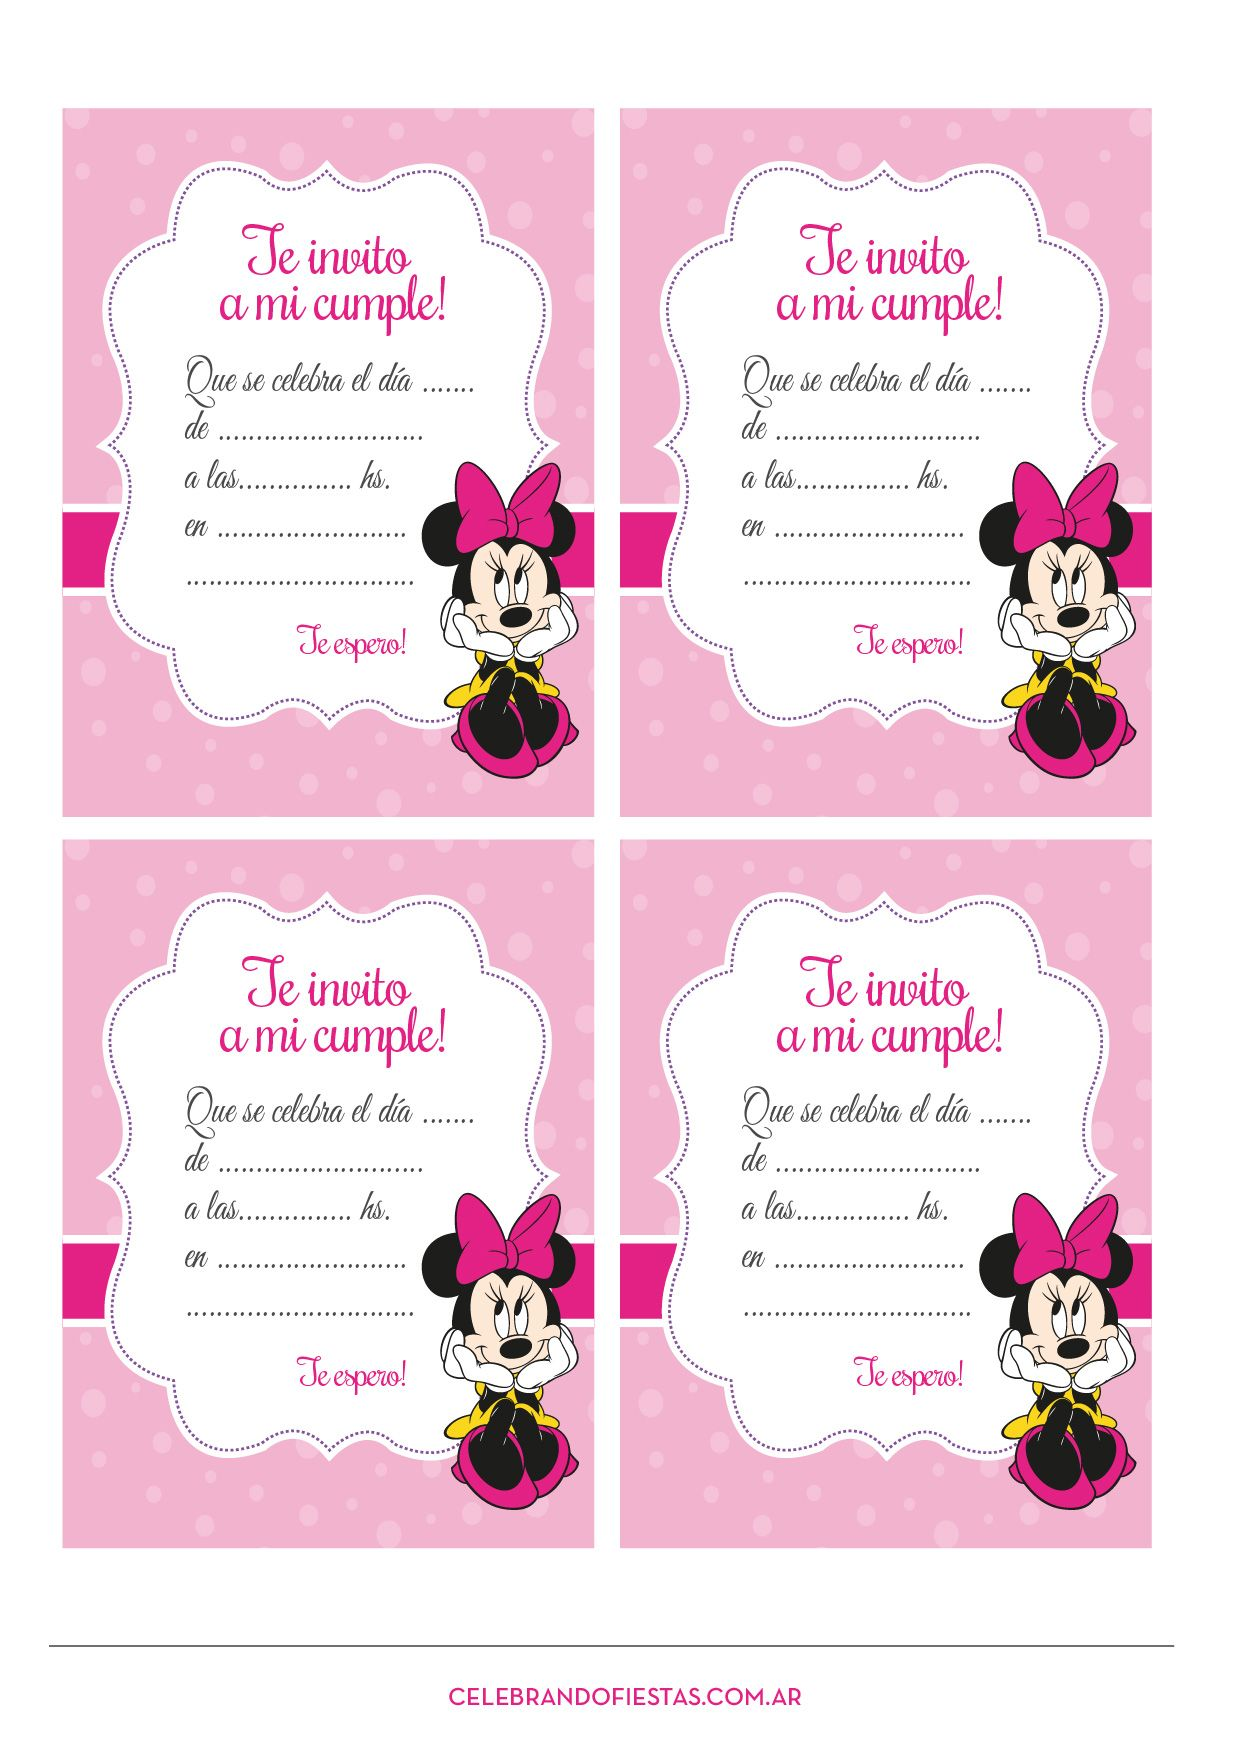 Fiestas Infantiles ud83c udf82 +63 Ideas de Cumpleaños ud83c udf81 Minnie mouse, Mice and Birthdays